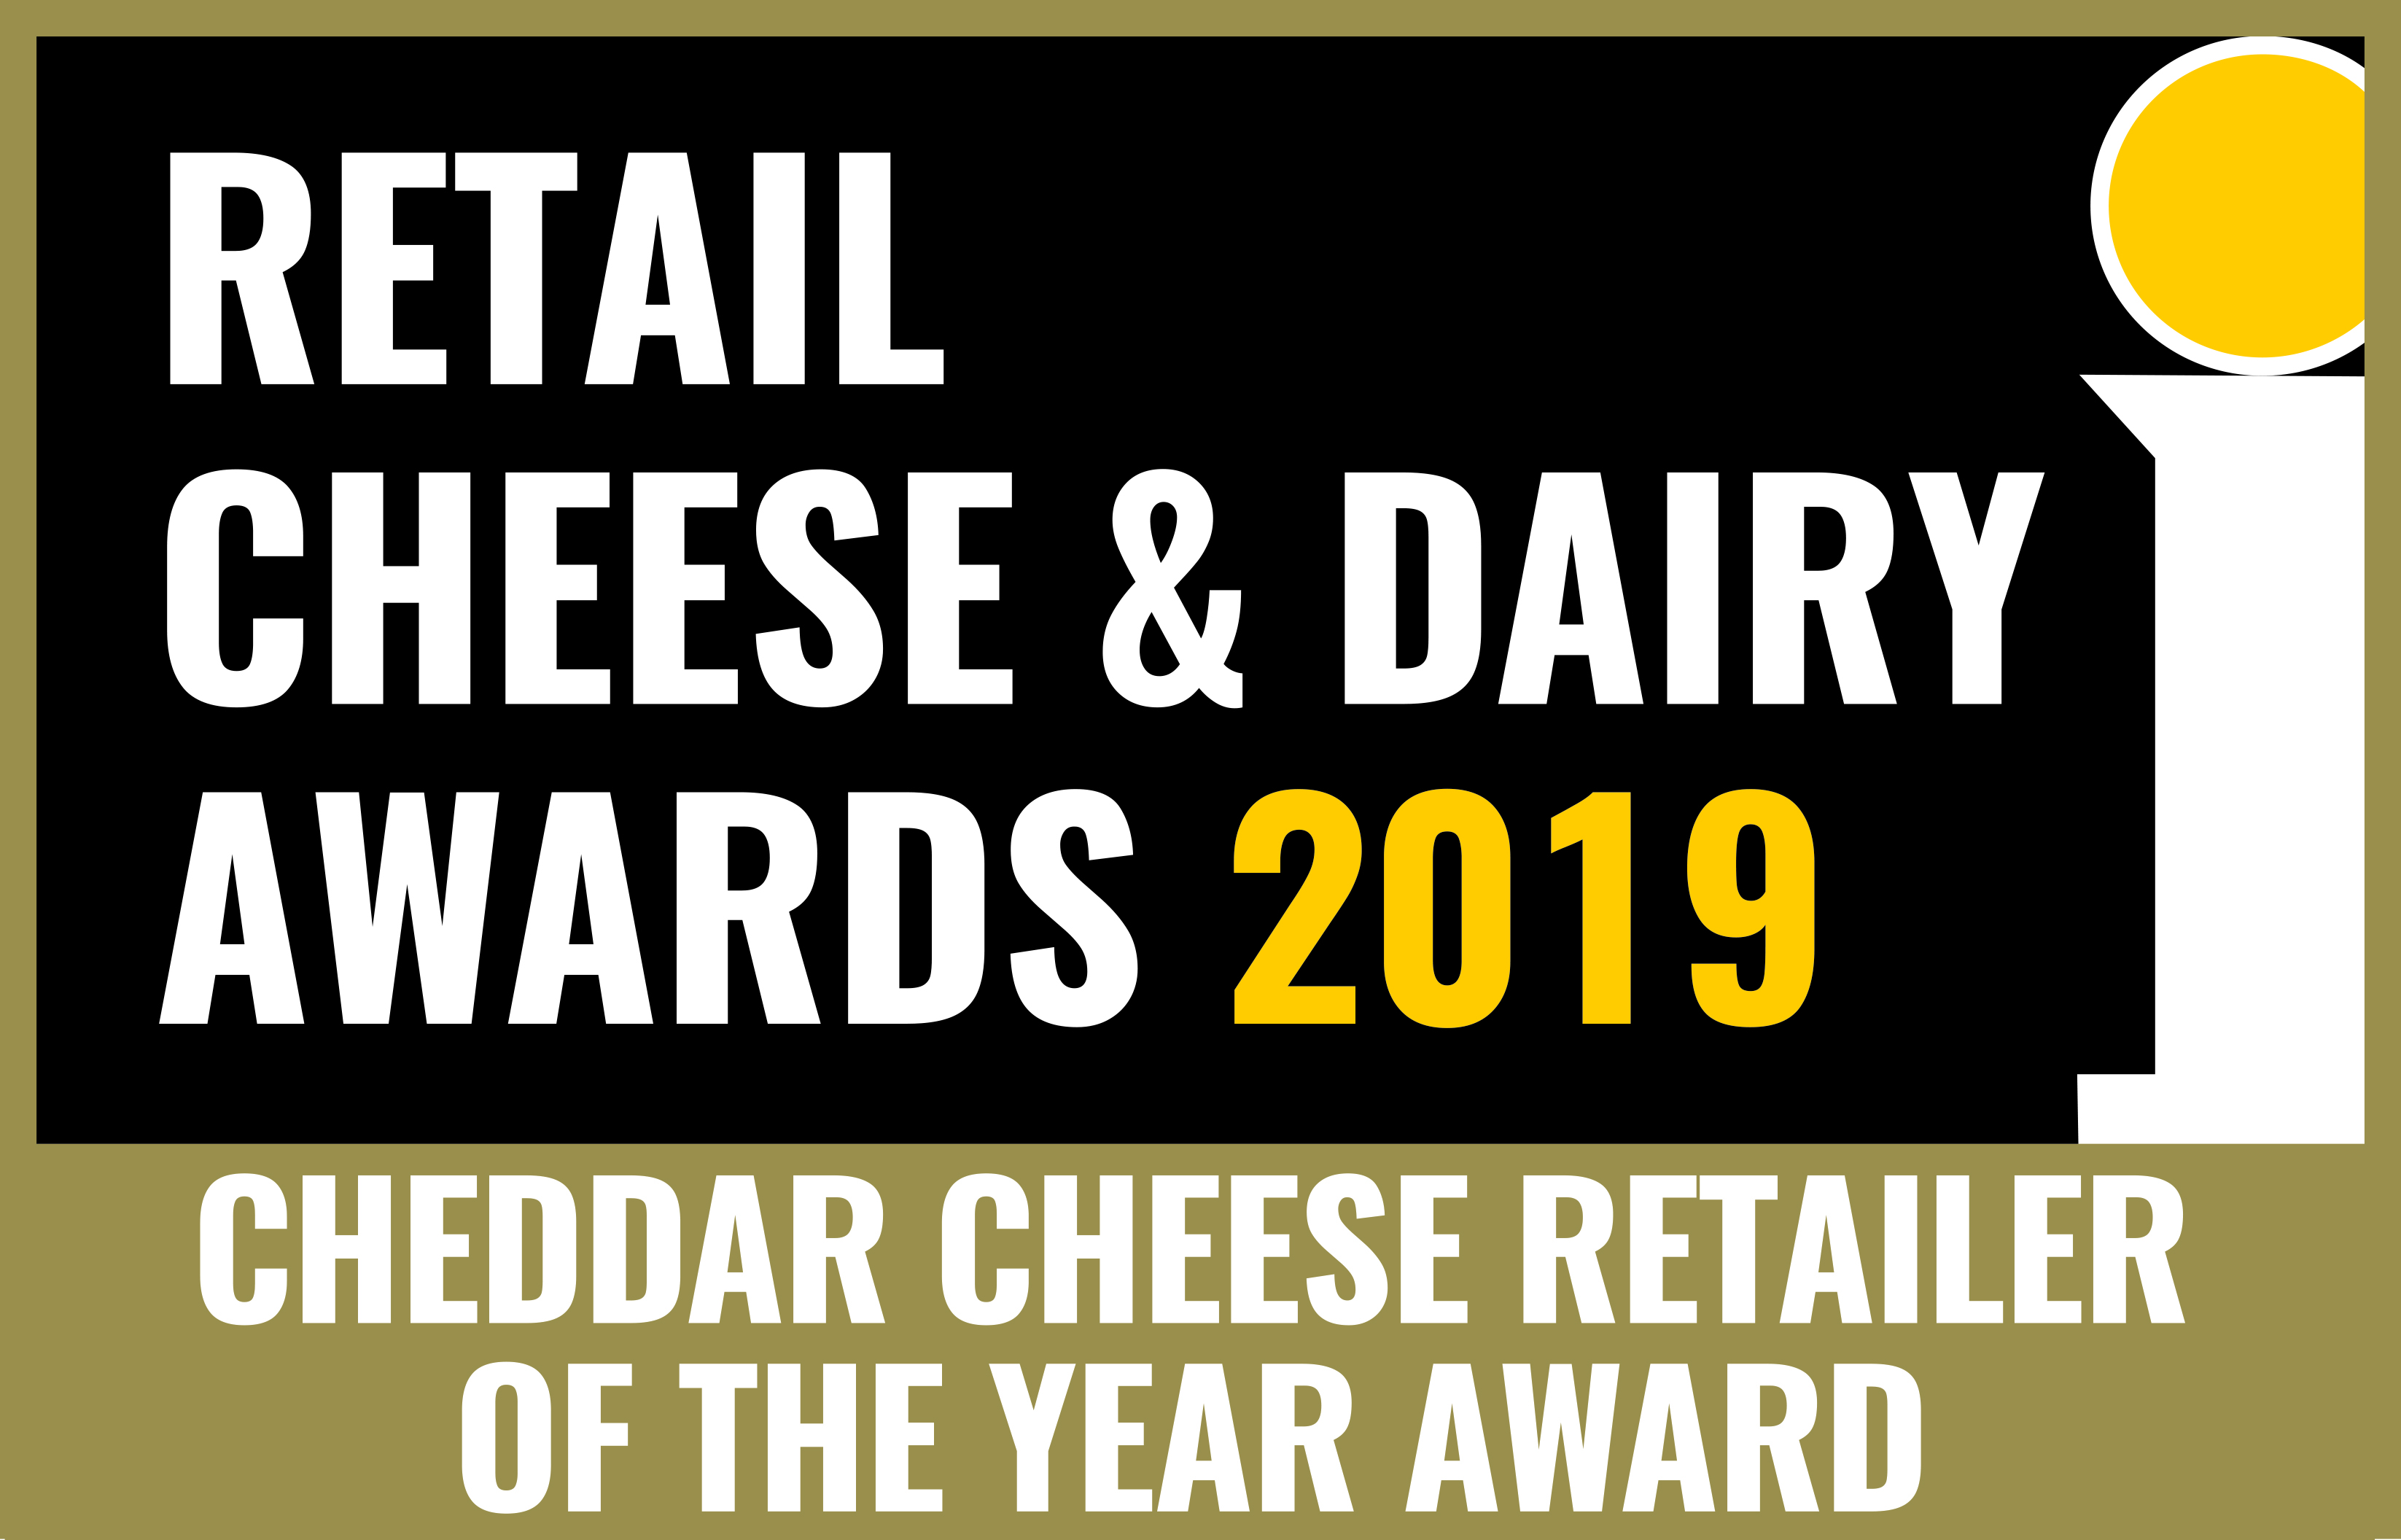 Cheddar Cheese Retailer of the Year Awards